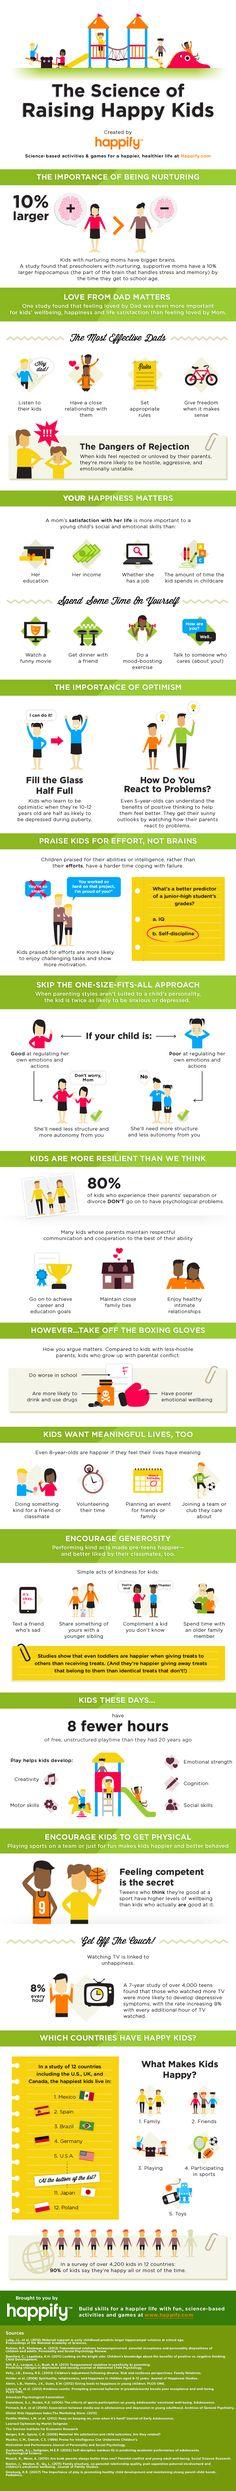 Infographic - The Science of Raising Happy Kids